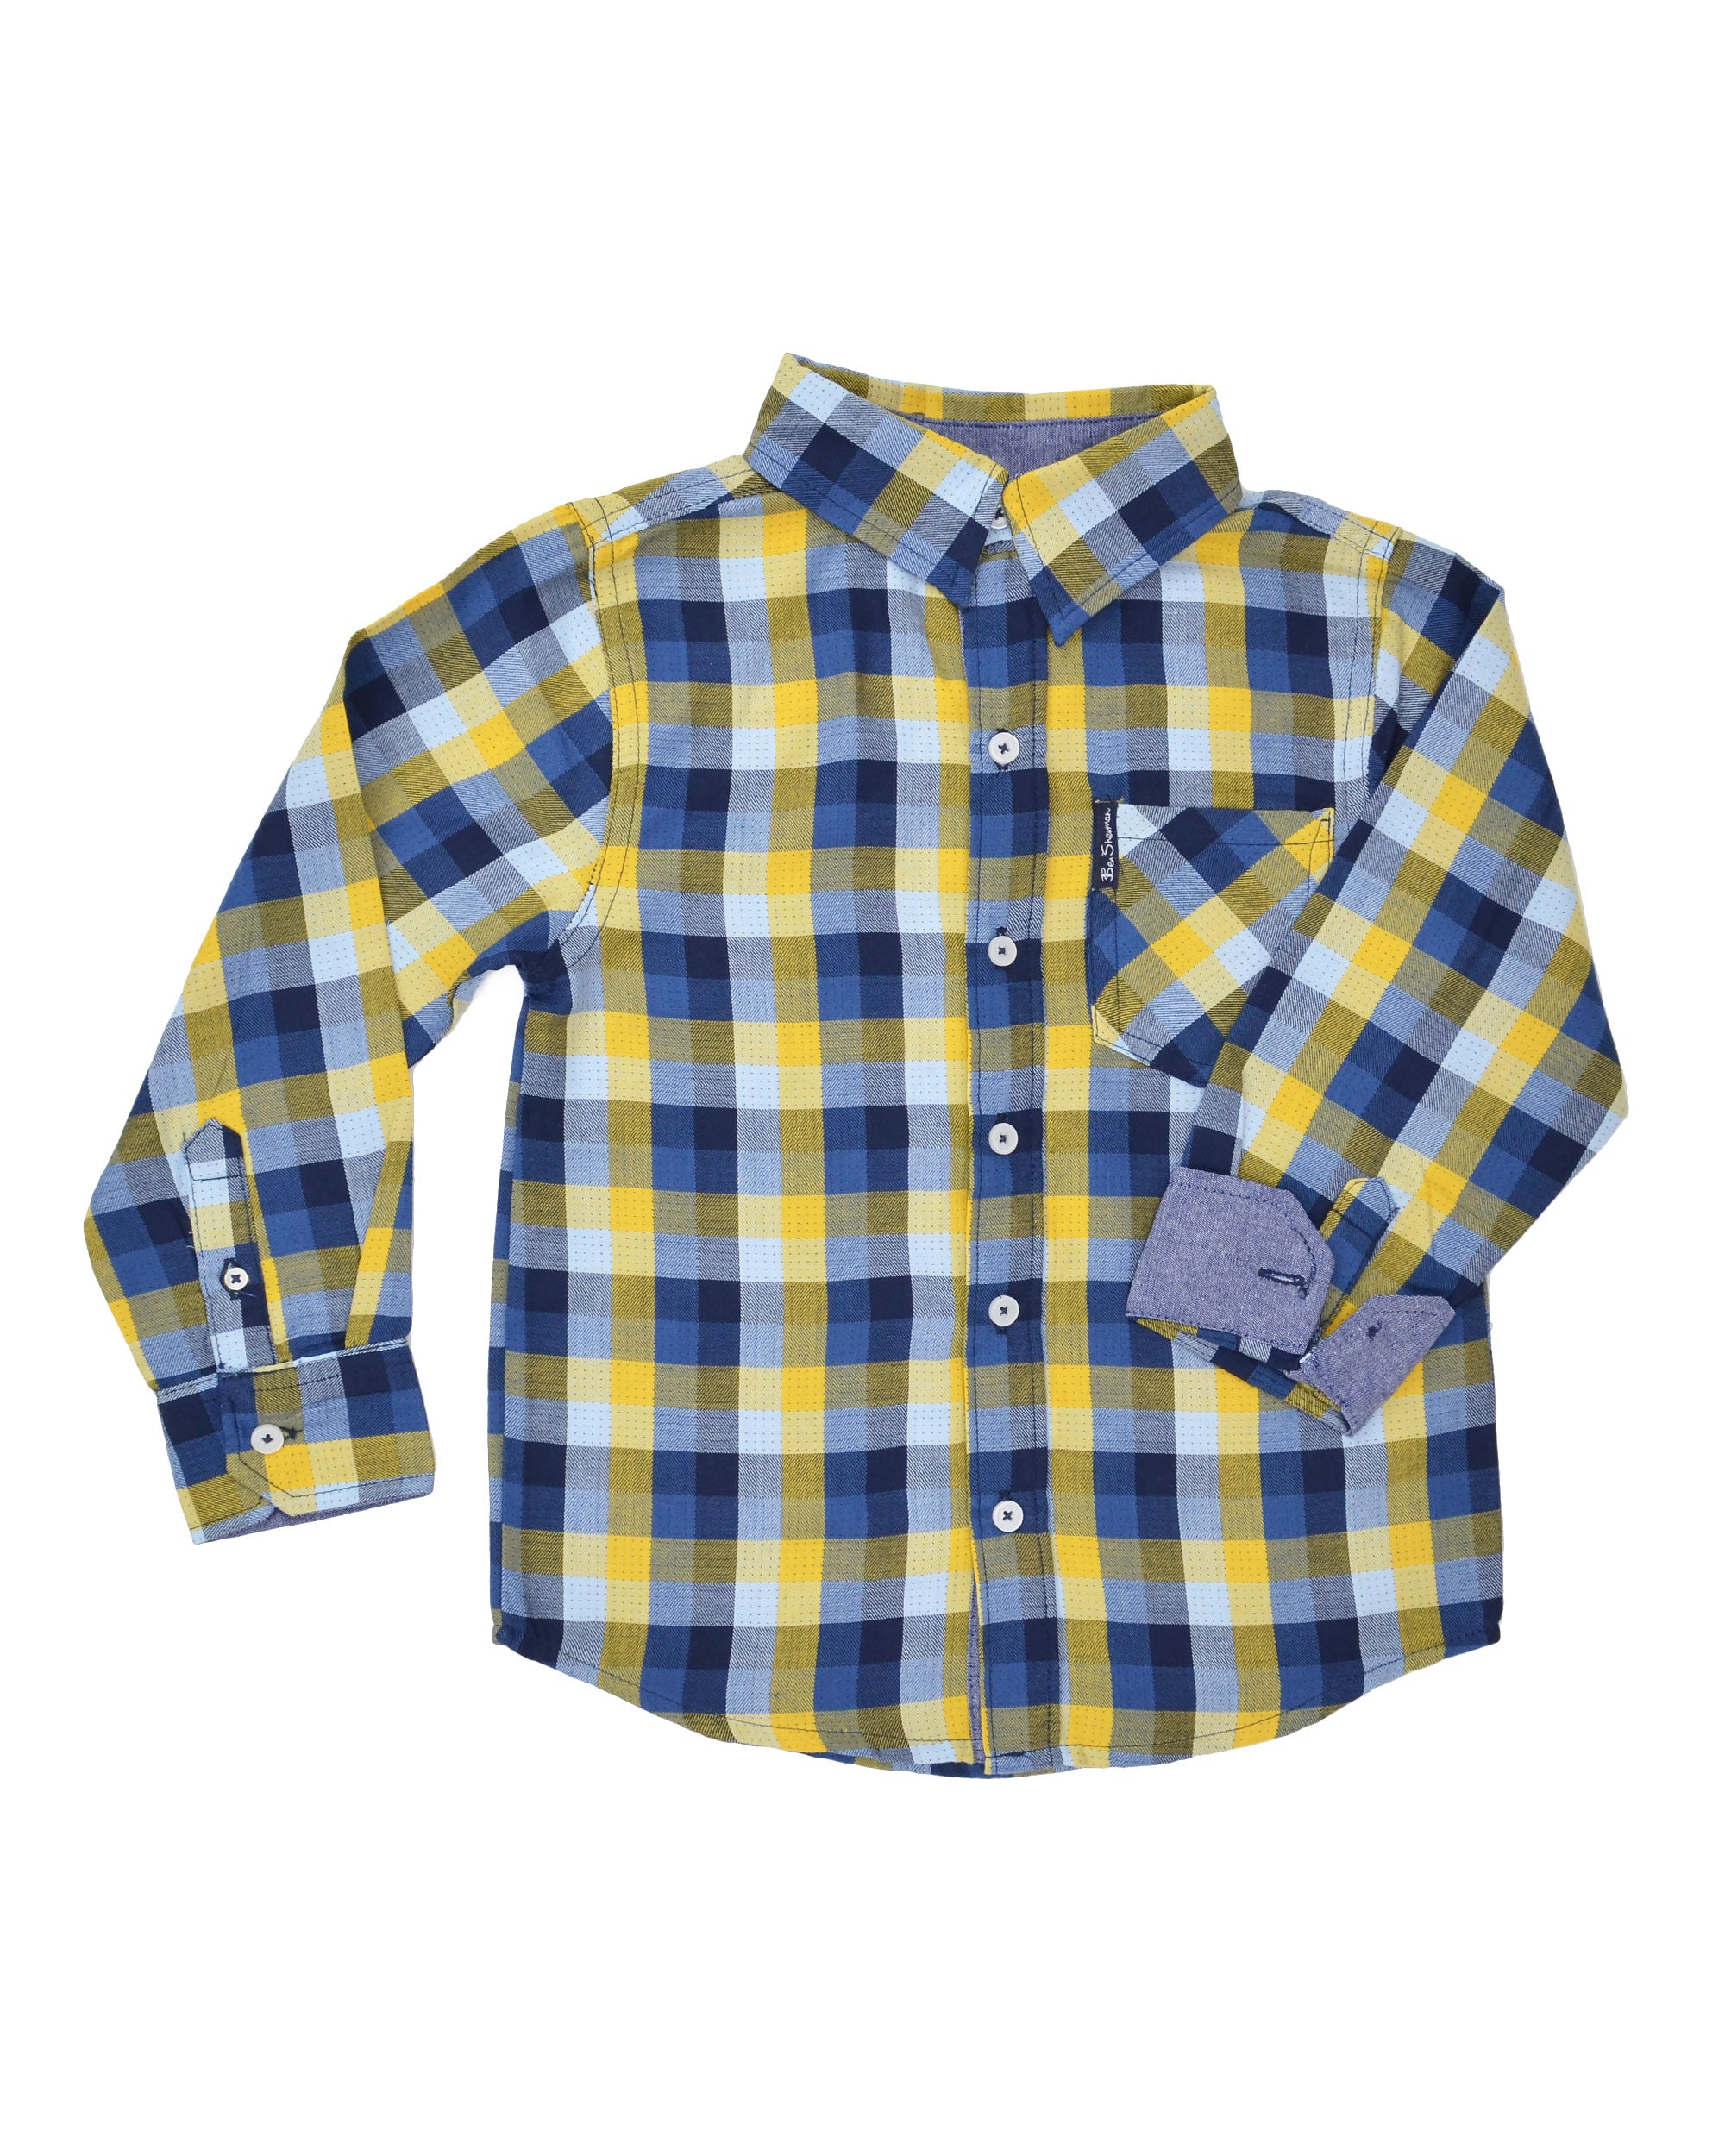 75f9d37ed Boys' Blue/Yellow Plaid Gingham Button-Down Shirt (Sizes 4-7. Hover or Click  to Enlarge